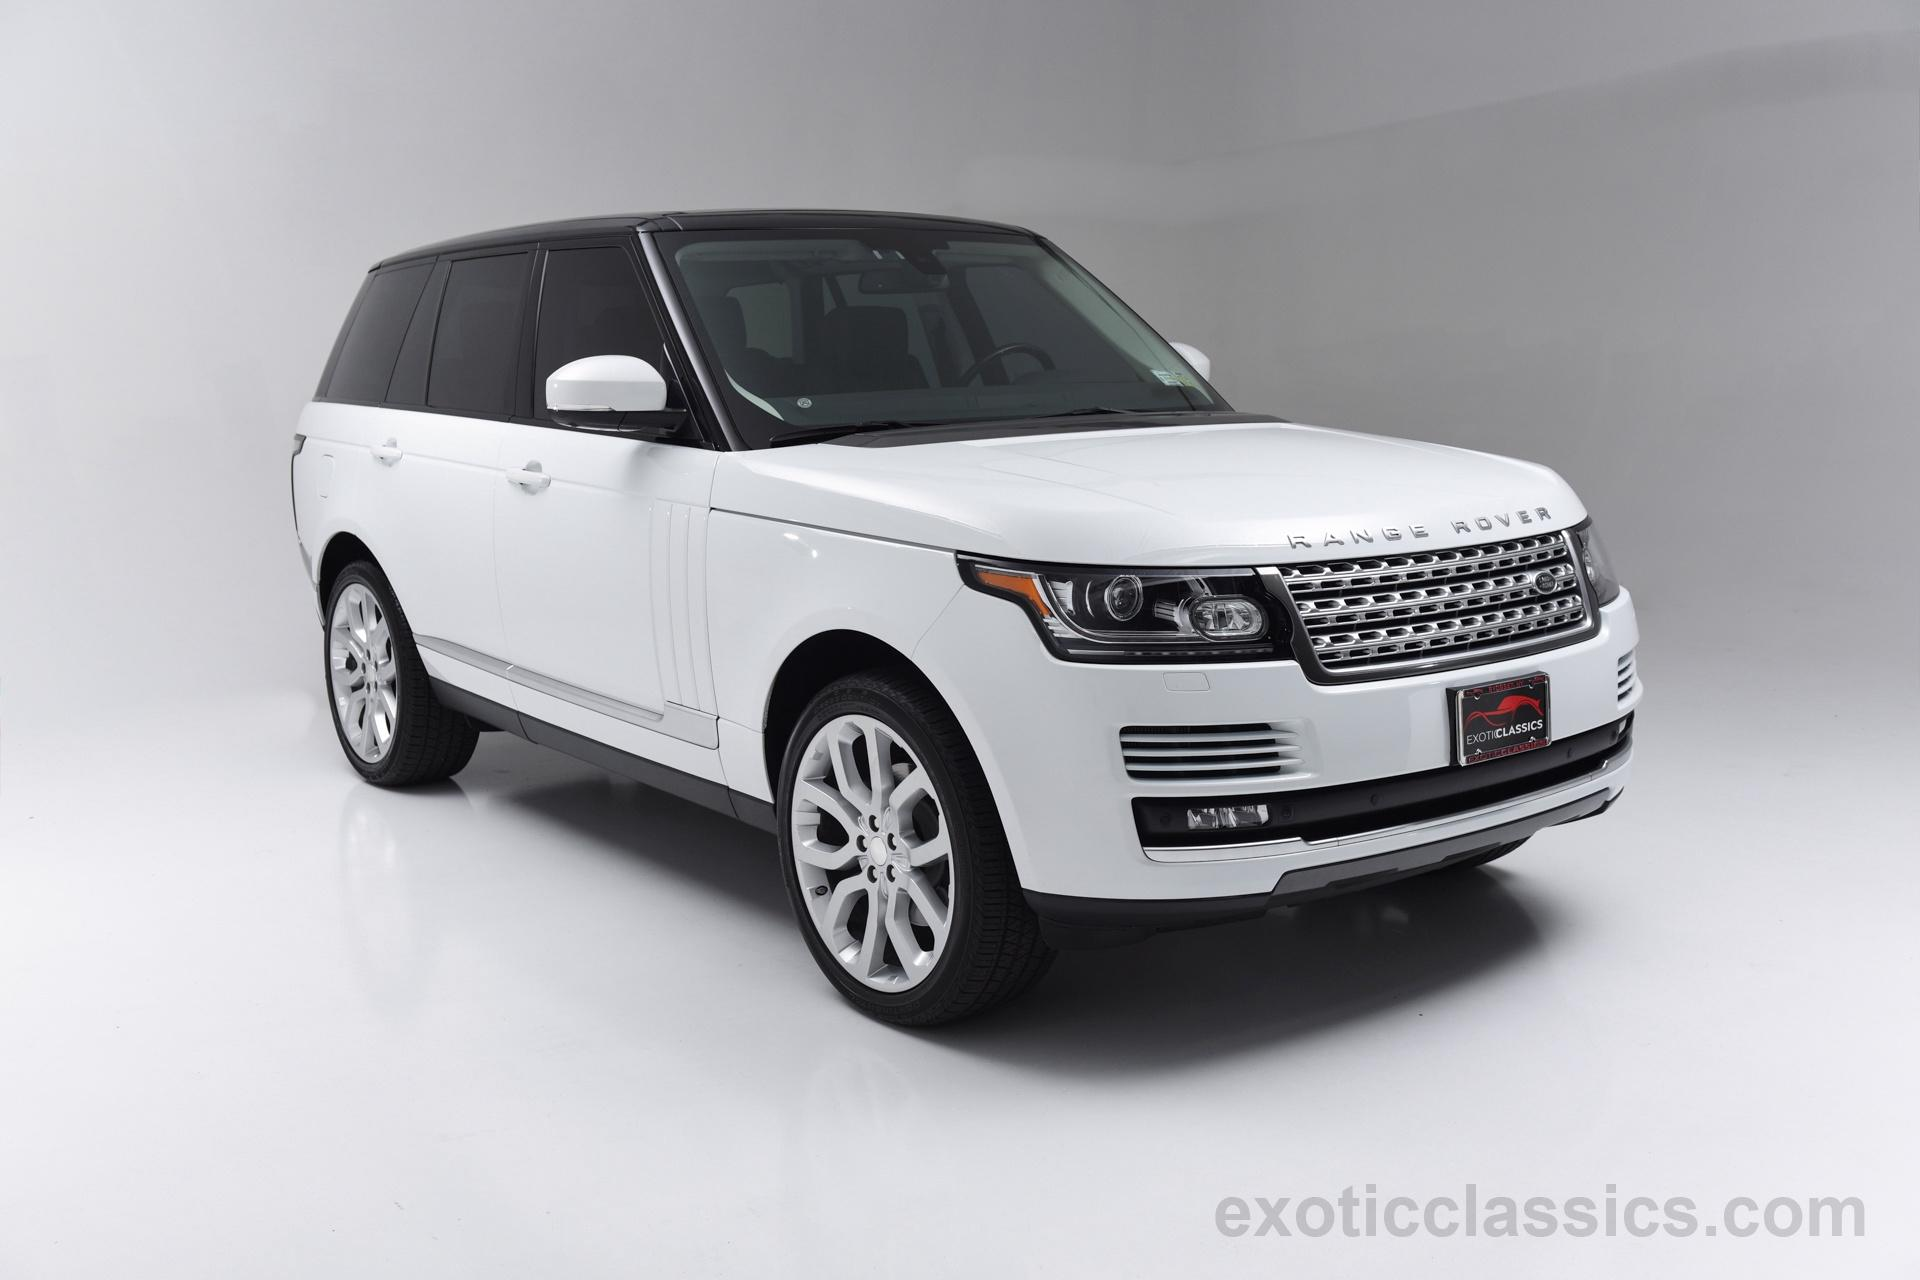 2014 Land Rover Range Rover Hse Champion Motors